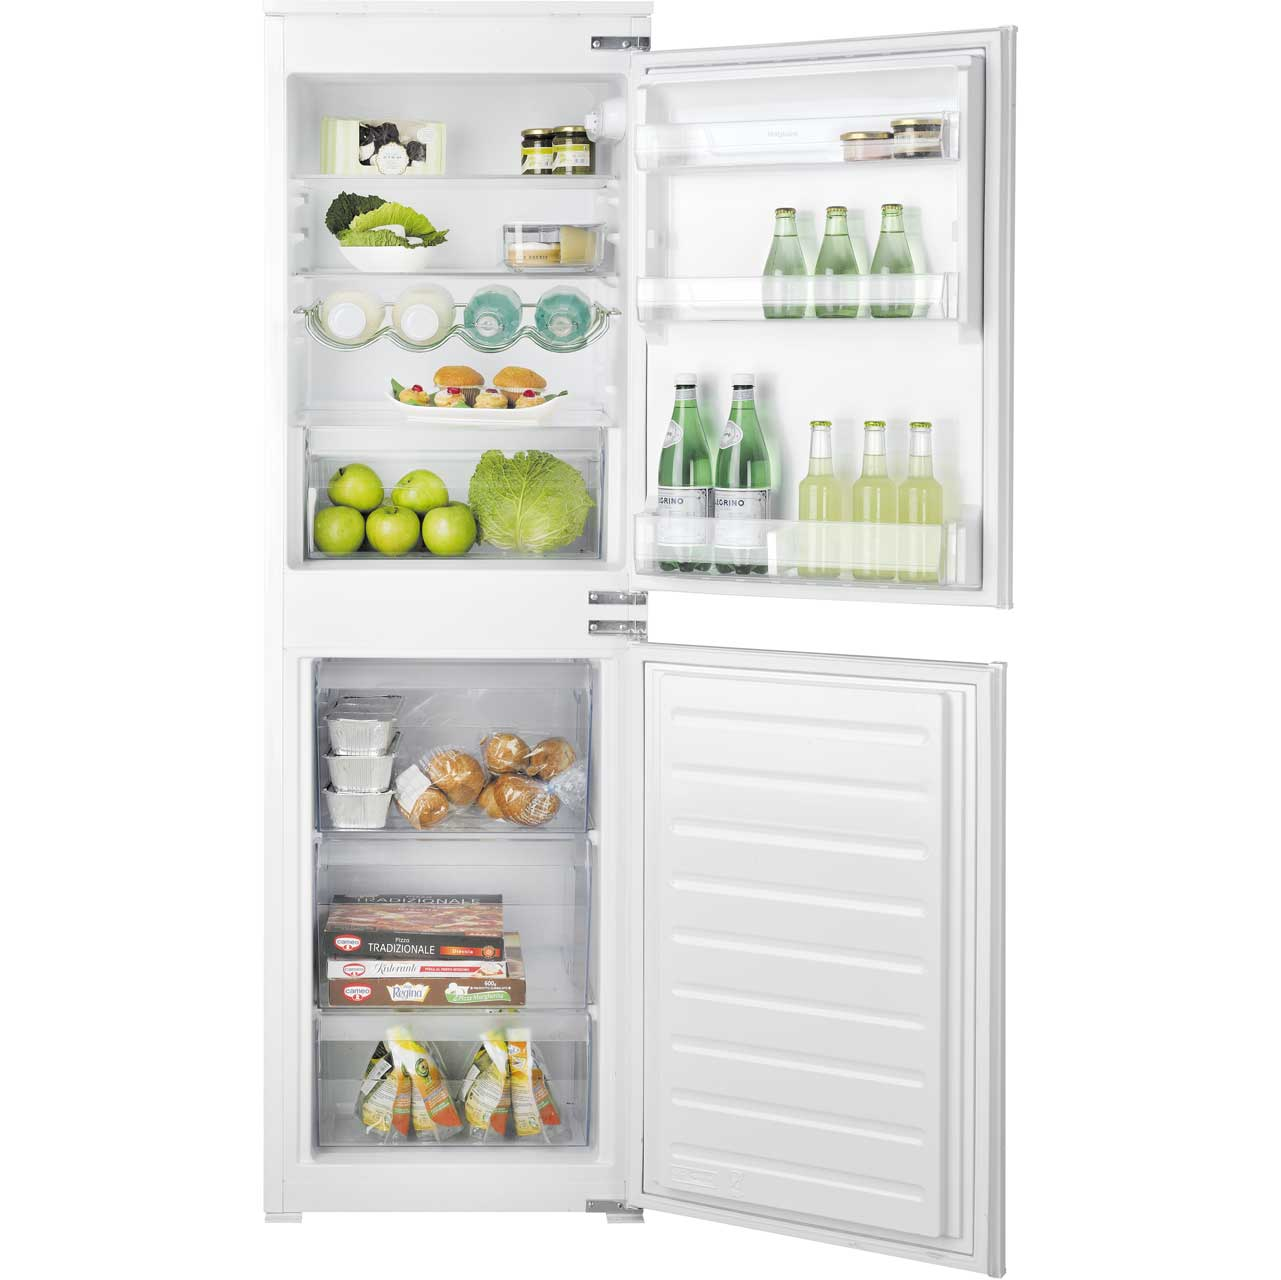 Slimline fridge freezer 55cm